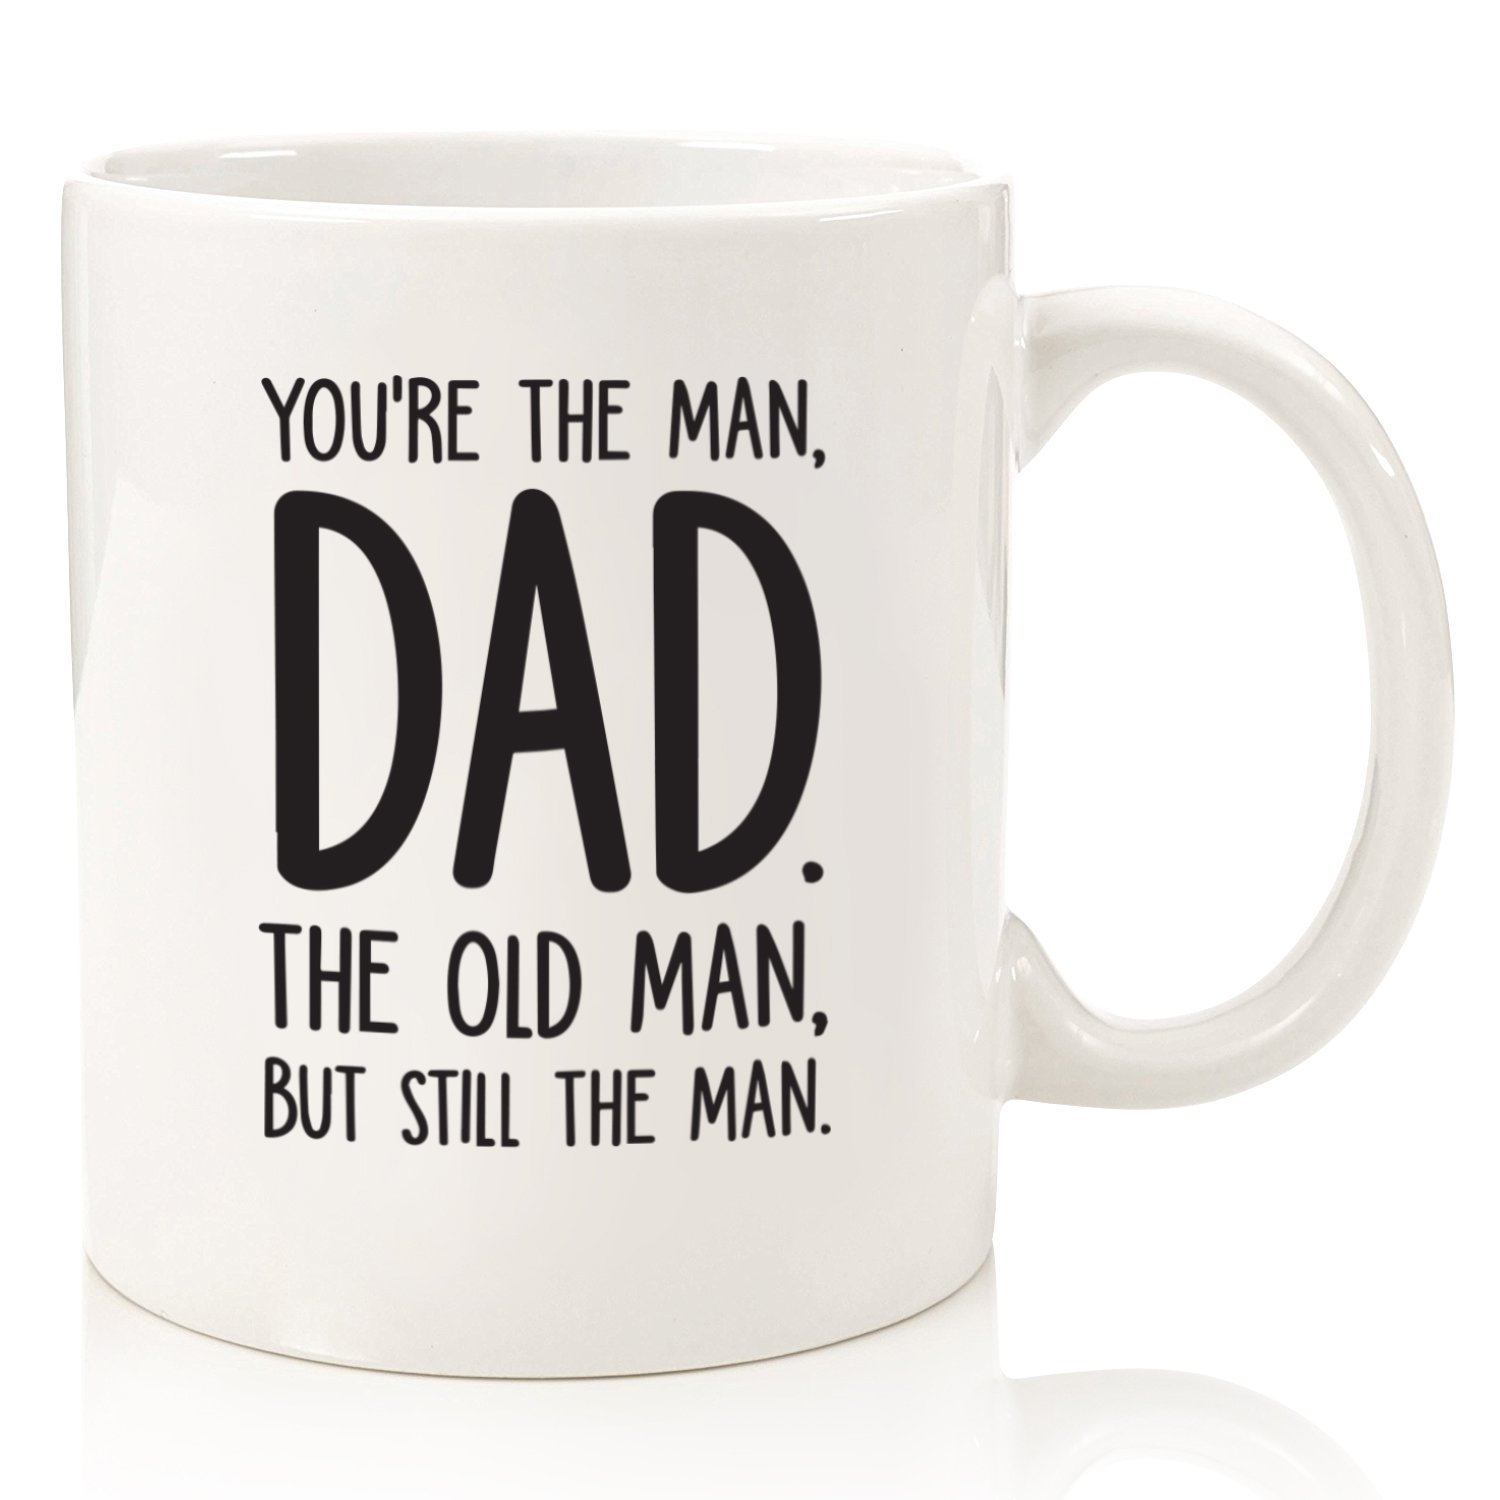 The Man/The Old Man Funny Dad Mug - Best Dad Fathers Day Gifts - Unique Gag Gift For Him From Daughter, Son, Wife - Cool Birthday Present Idea For a Father, Men, Guys - Fun Novelty Coffee Cup